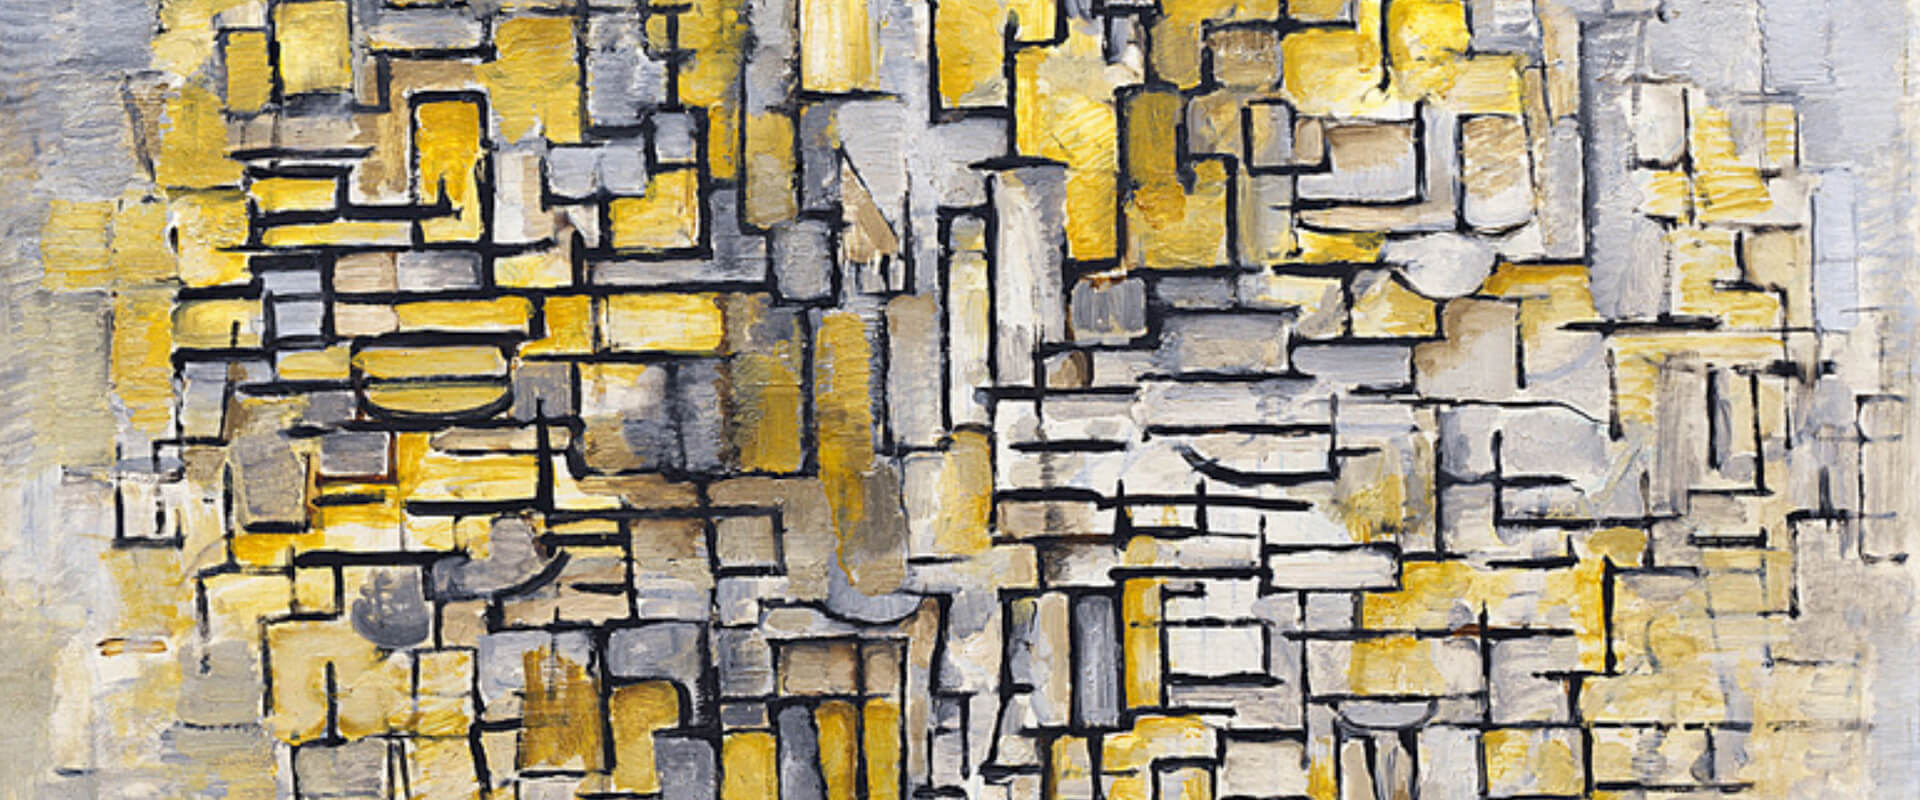 Piet Mondrian Artworks Collection | Buy Posters, Frames, Canvas, Digital Art & Large Size Prints Of The Famous Modern Master's Artworks